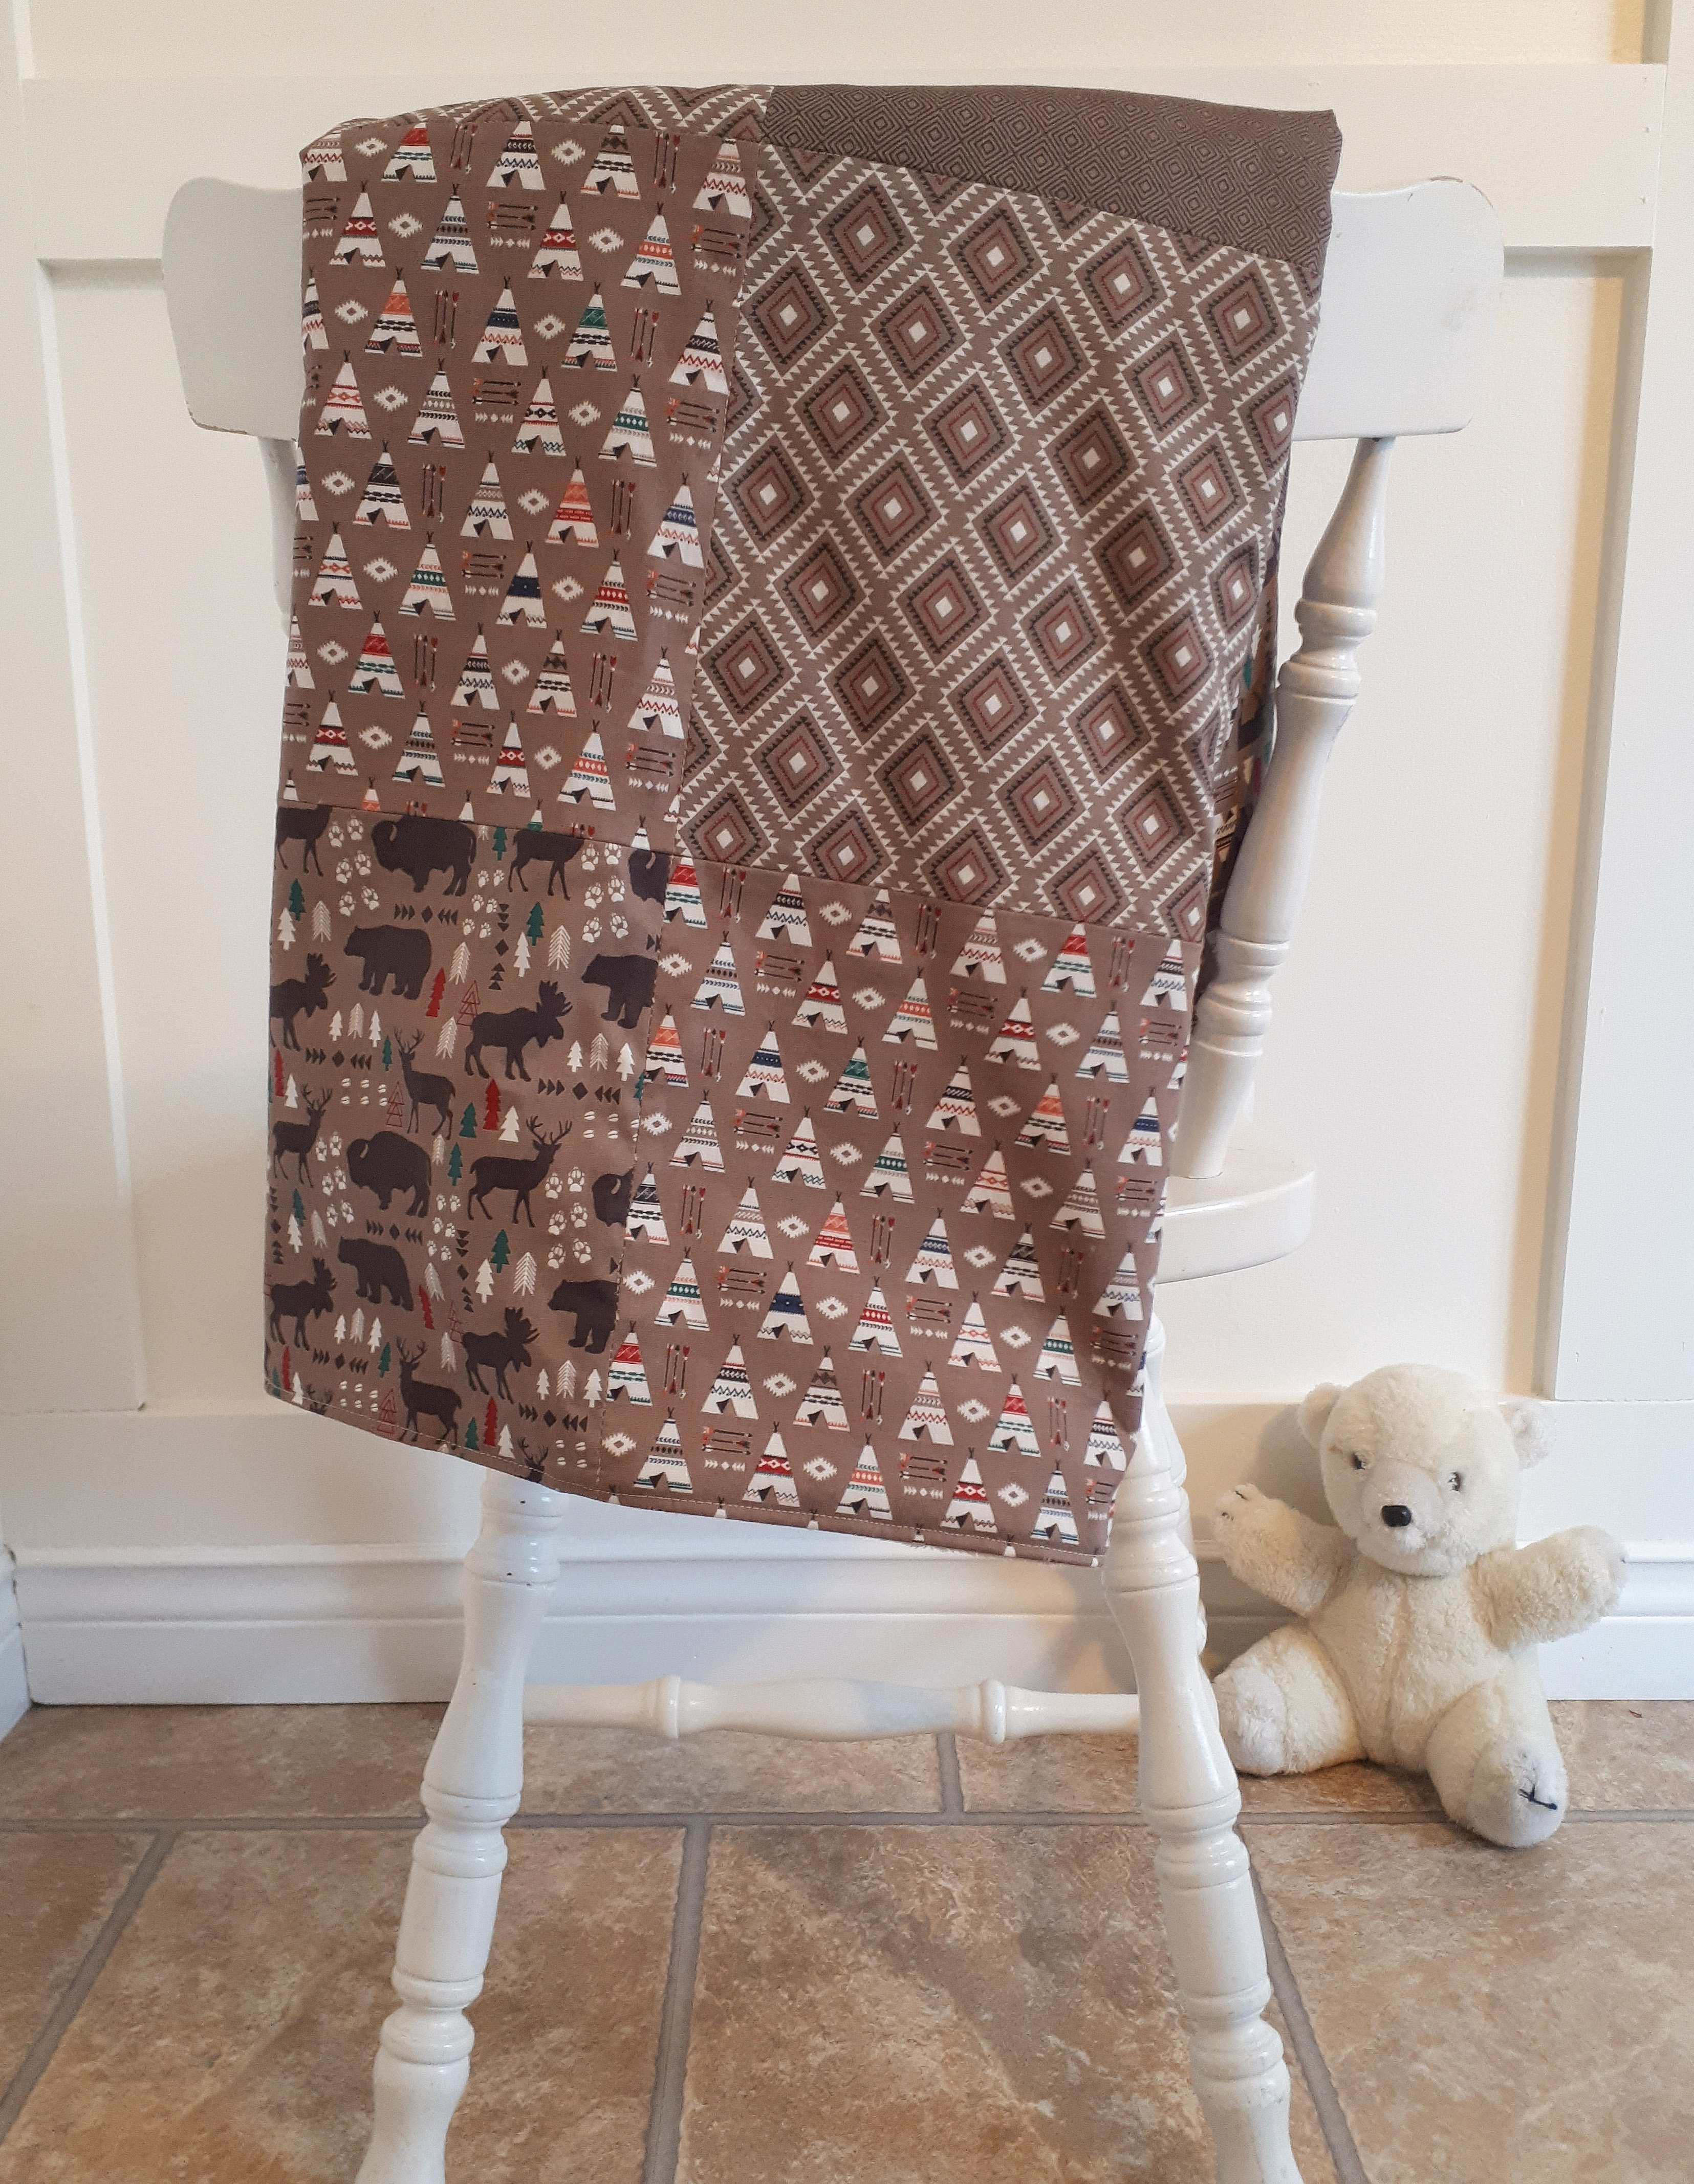 A simple DIY baby blanket tutorial. This sewing project only takes about 2 hours to complete! This patchwork baby blanket would be a great baby shower gift.